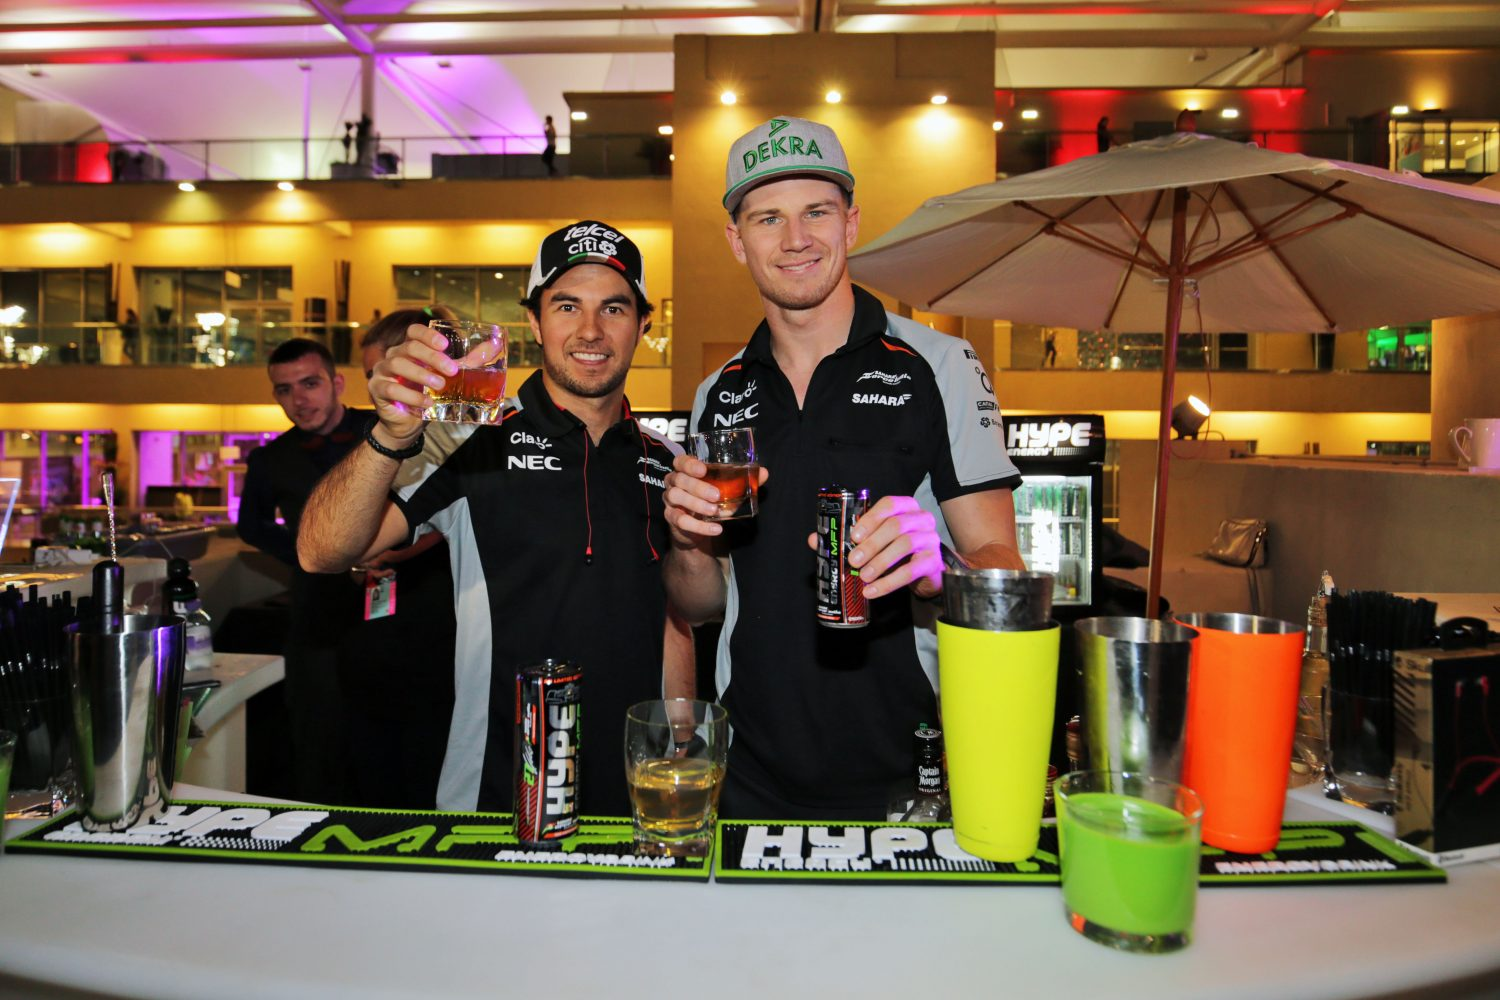 Formula One World Championship 2016, Round 21, Abu Dhabi Grand Prix, Abu Dhabi, United Arab Emirates, Thursday 24 November 2016 - L to R): Sergio Perez (MEX) Sahara Force India F1 and team mate Nico Hulkenberg (GER) Sahara Force India F1 at a Hype Energy Drink event.